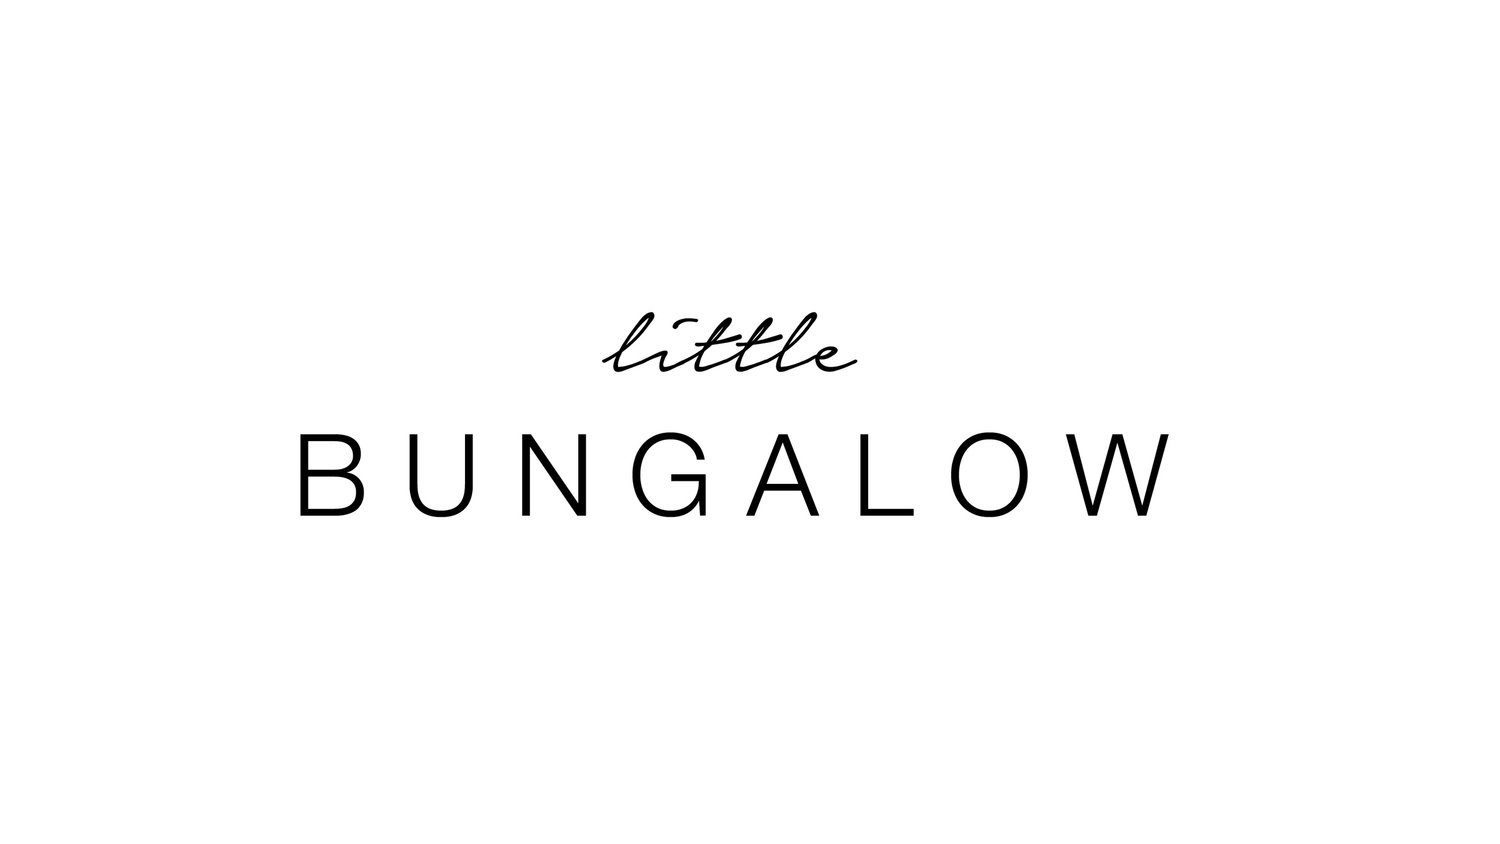 LITTLE BUNGALOW